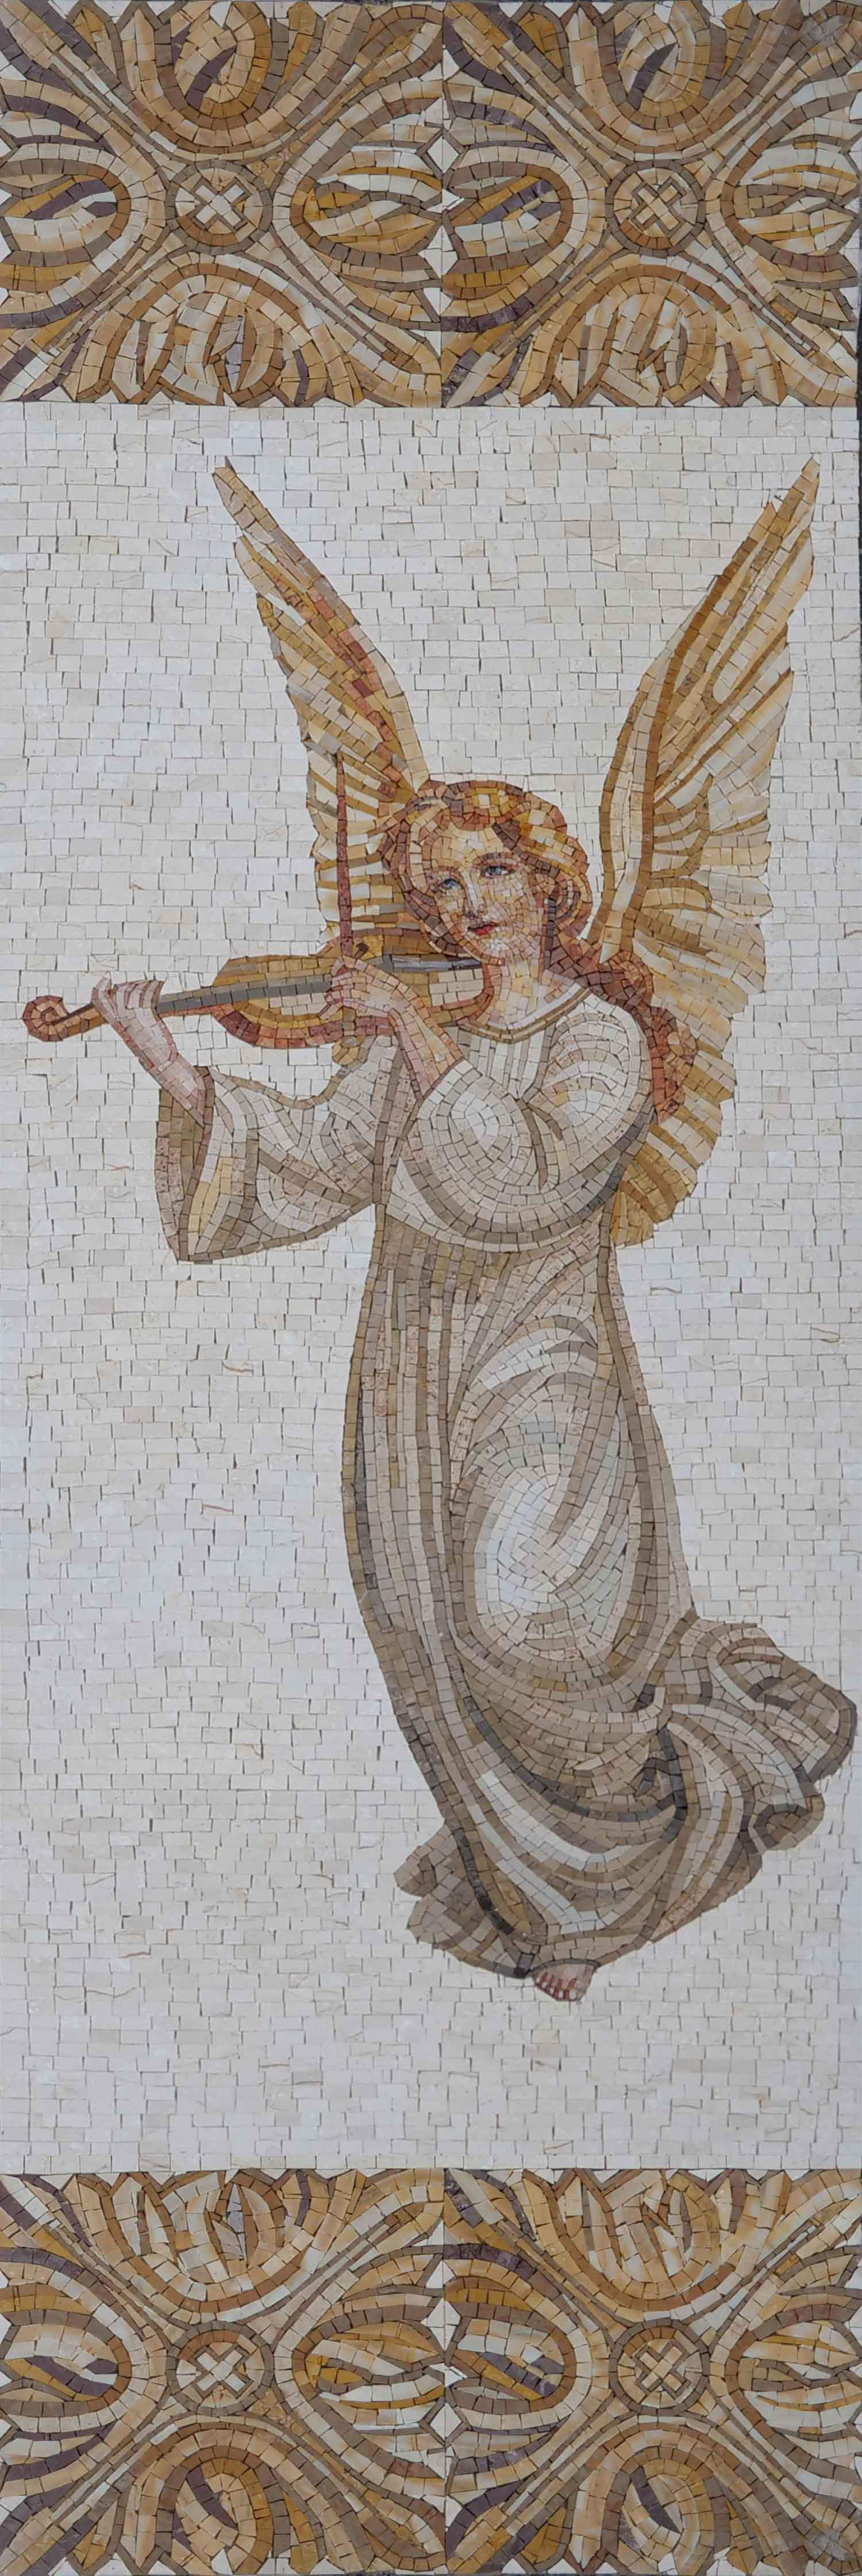 Angel Playing The Violin Mosaic Art Pic